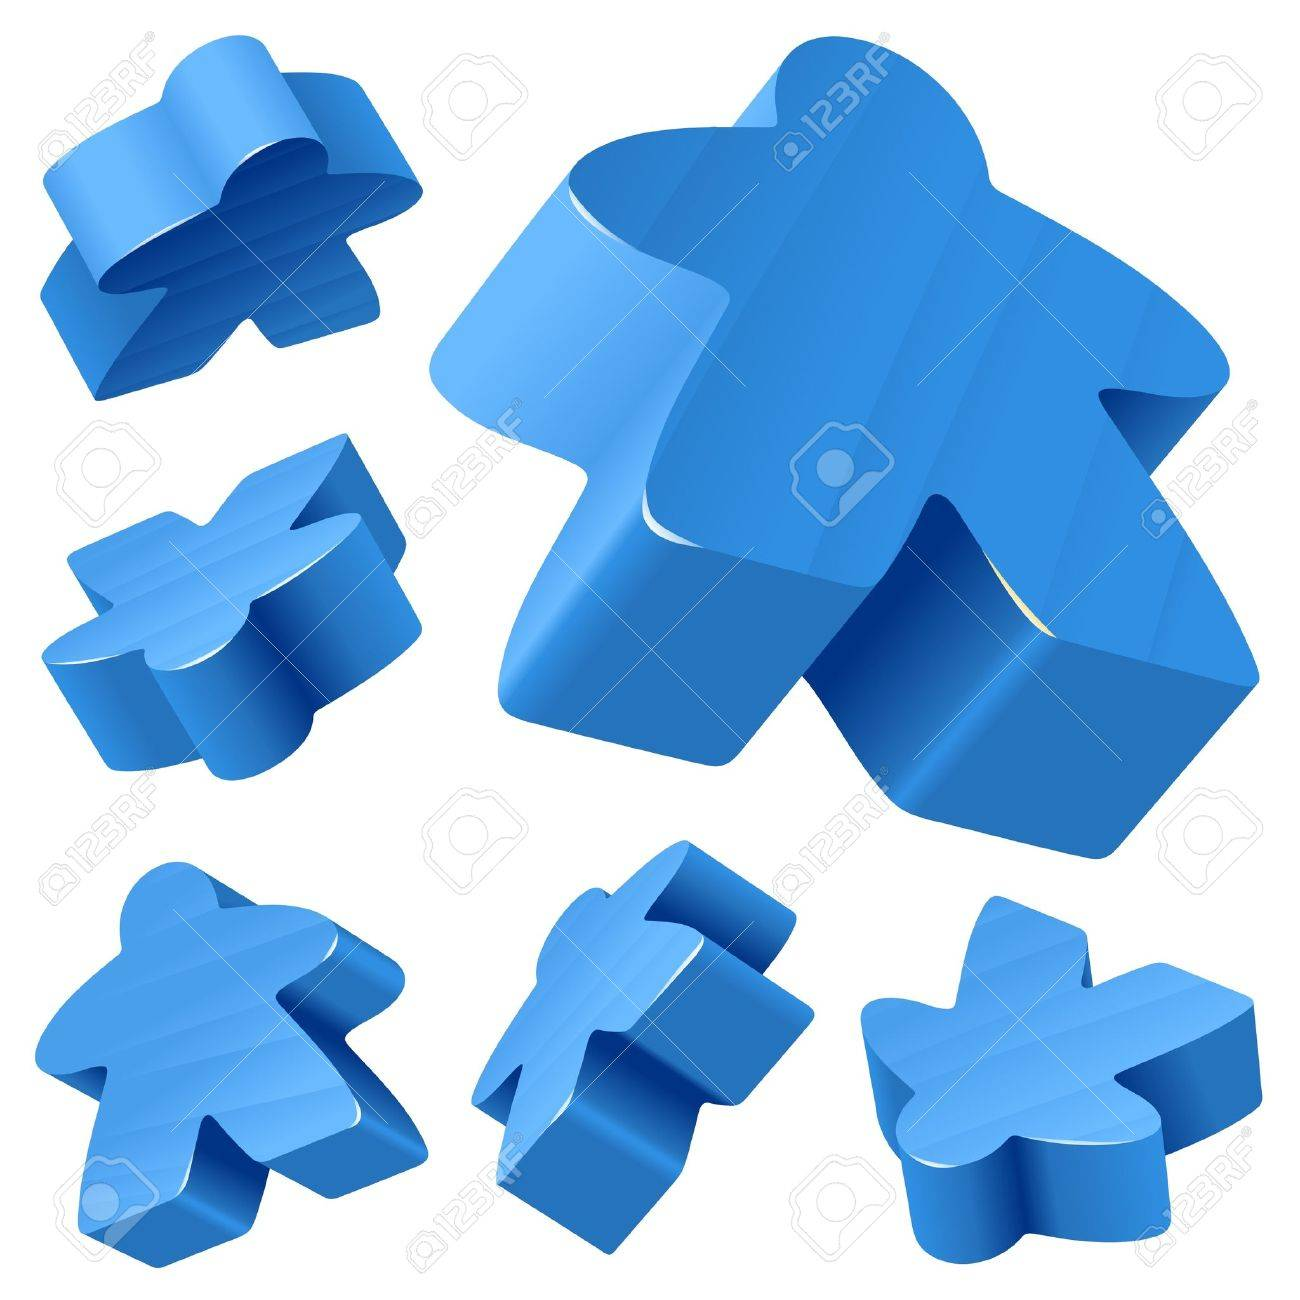 Blue wooden Meeple vector set isolated on white. Symbol of family board games. Stock Vector - 12796620